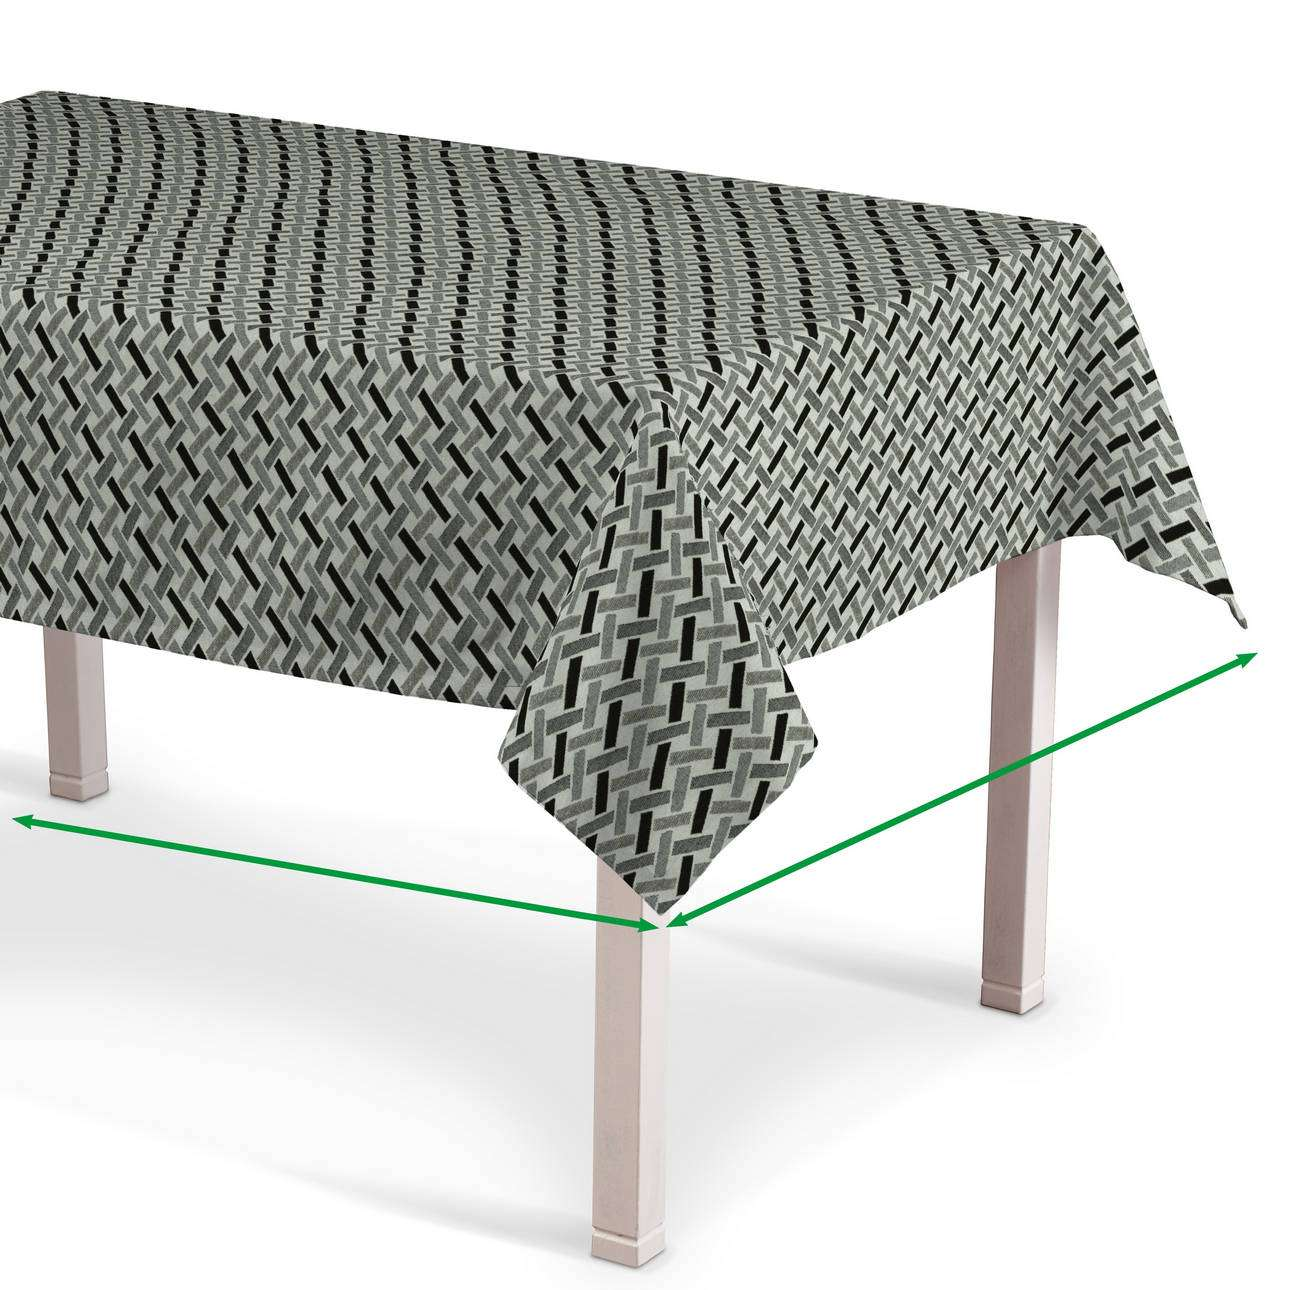 Rectangular tablecloth in collection Black & White, fabric: 142-78